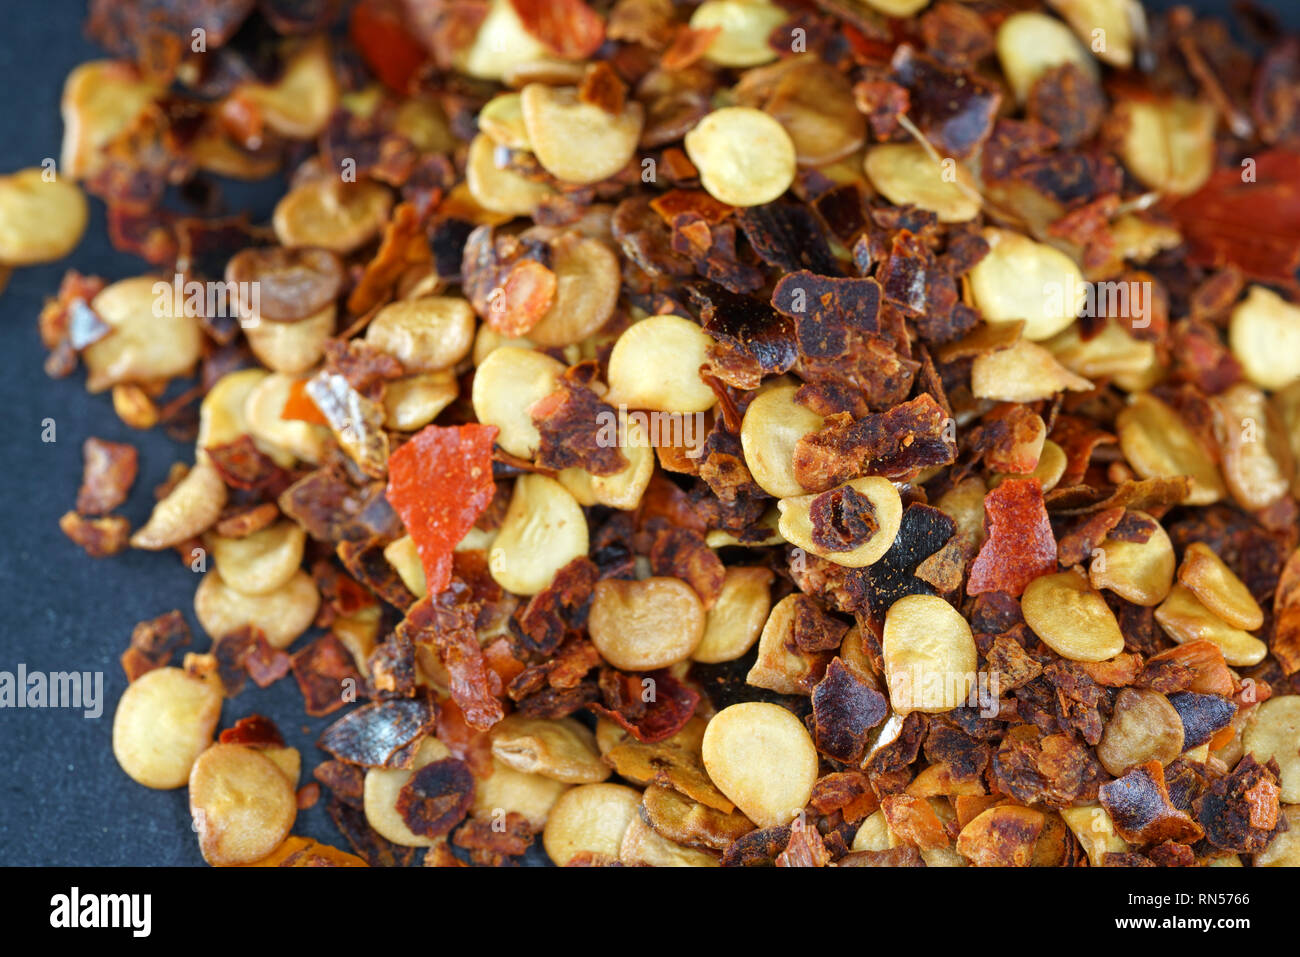 The chili spice is considered the hottest chili spice ever. This sharpness can only be topped if different chili spices are mixed. - Stock Image